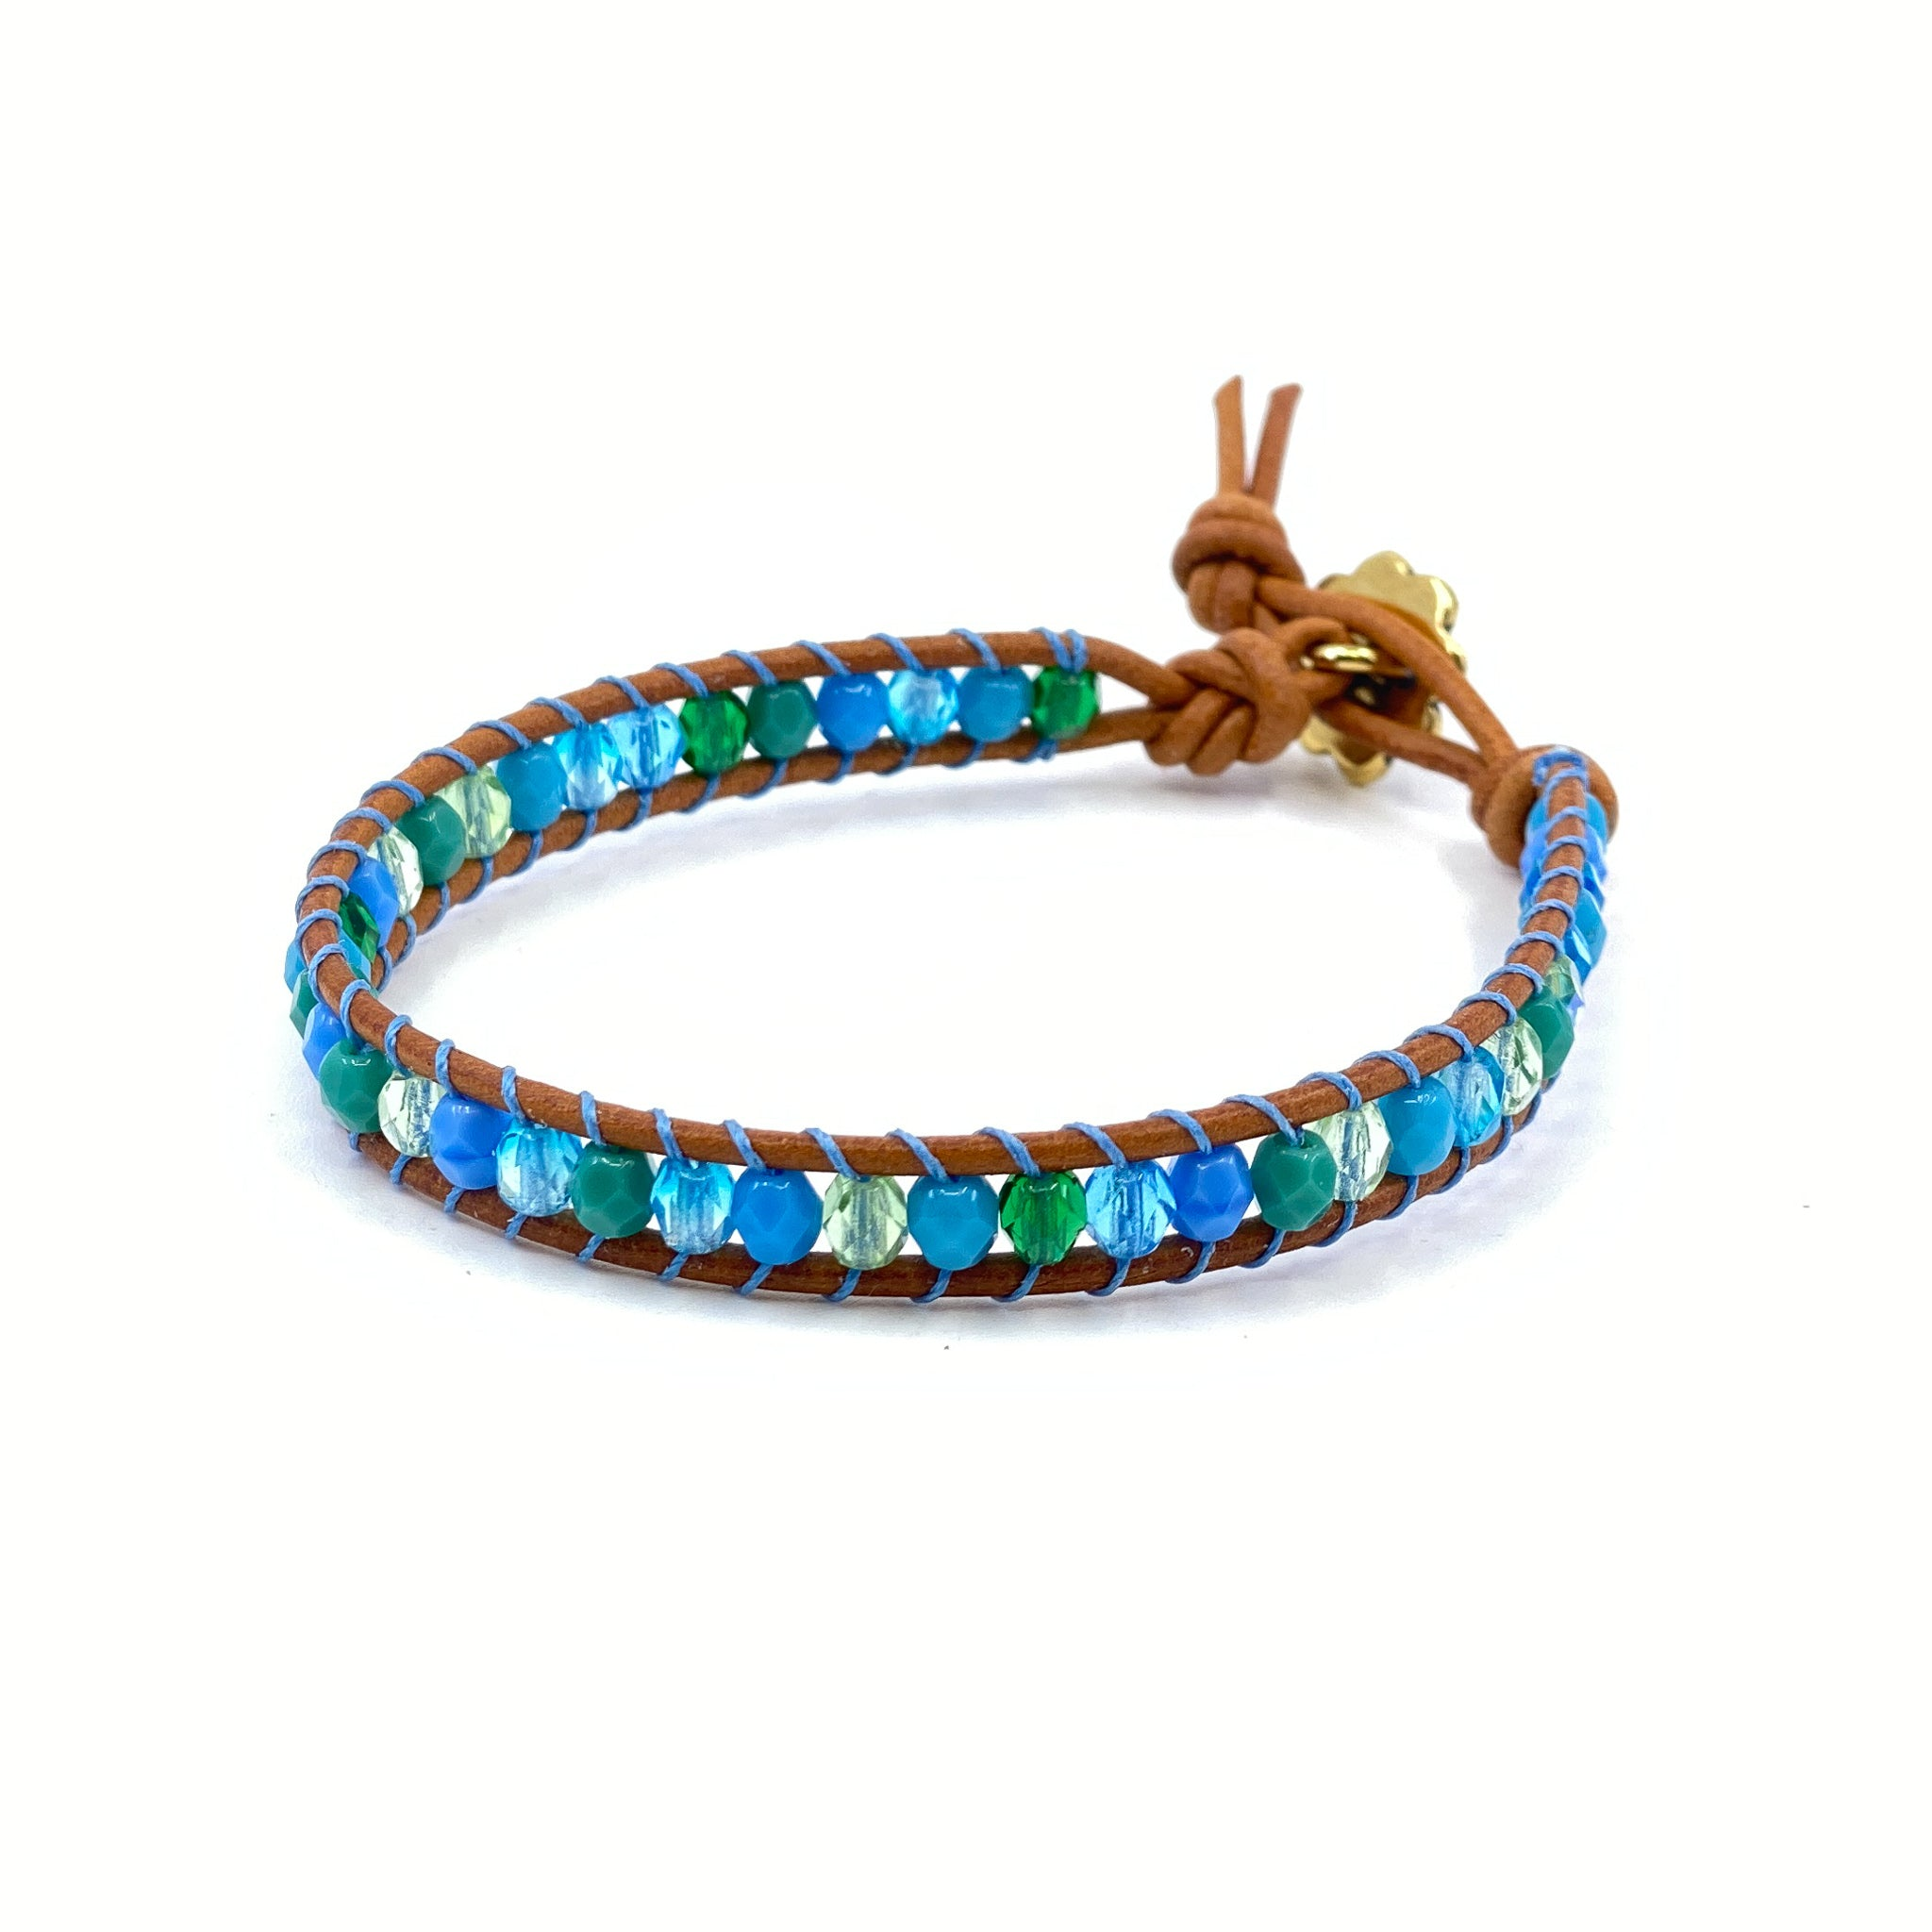 Lattice Wrap Bracelet Kits - Czech Glass